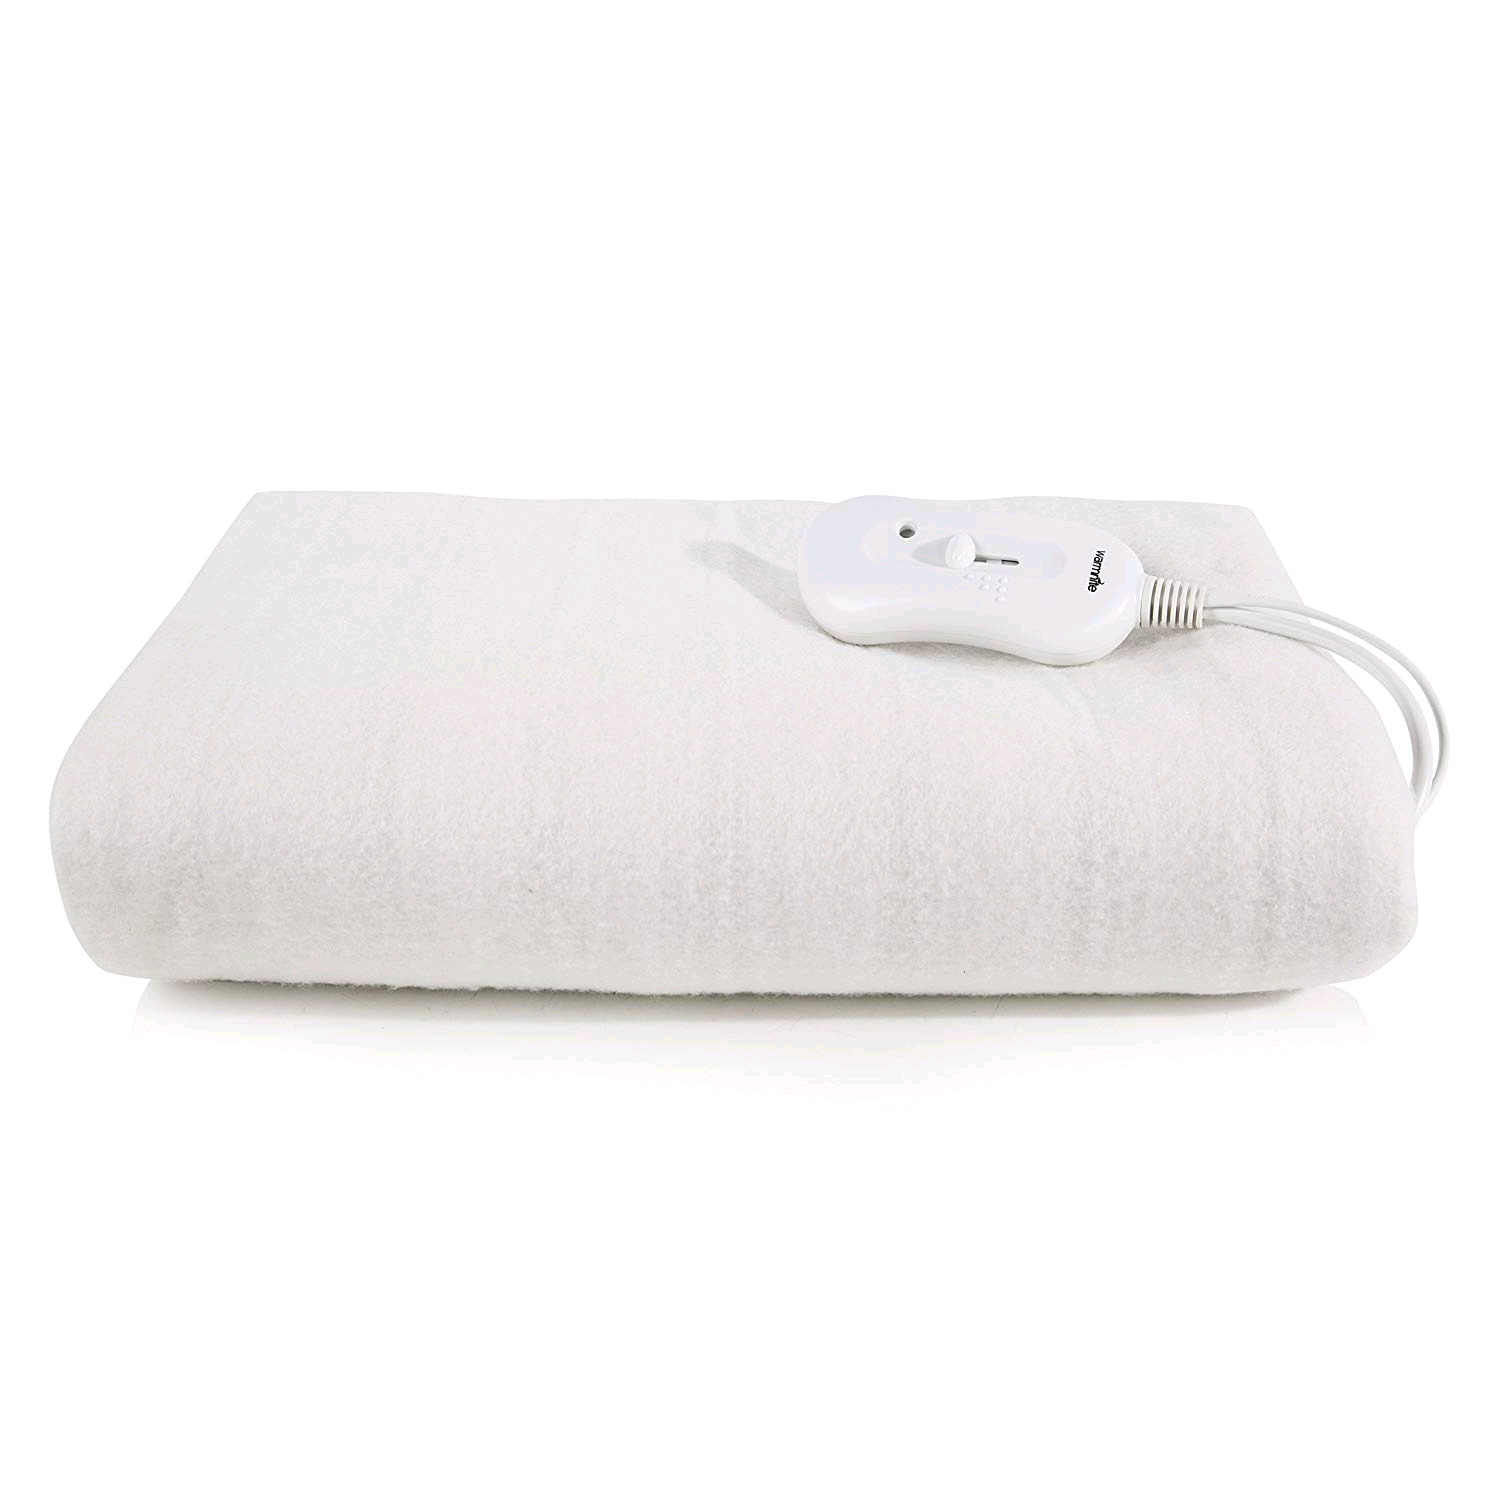 Warmlite Double Electric Blanket